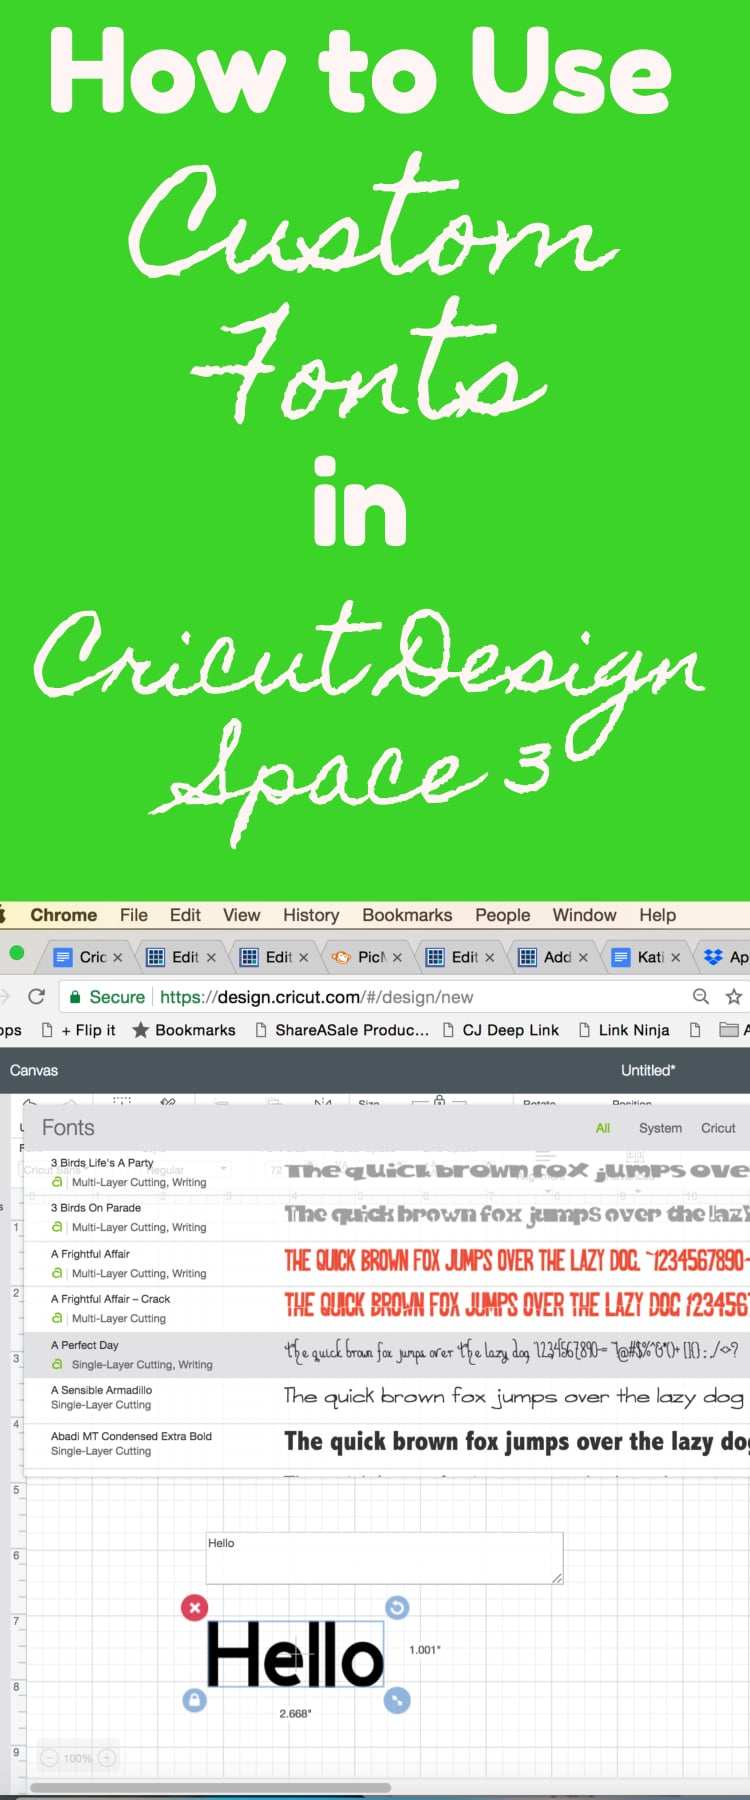 How to Use Fonts in Cricut Design Space 3 / Design Space / Cricut for beginners via @clarkscondensed